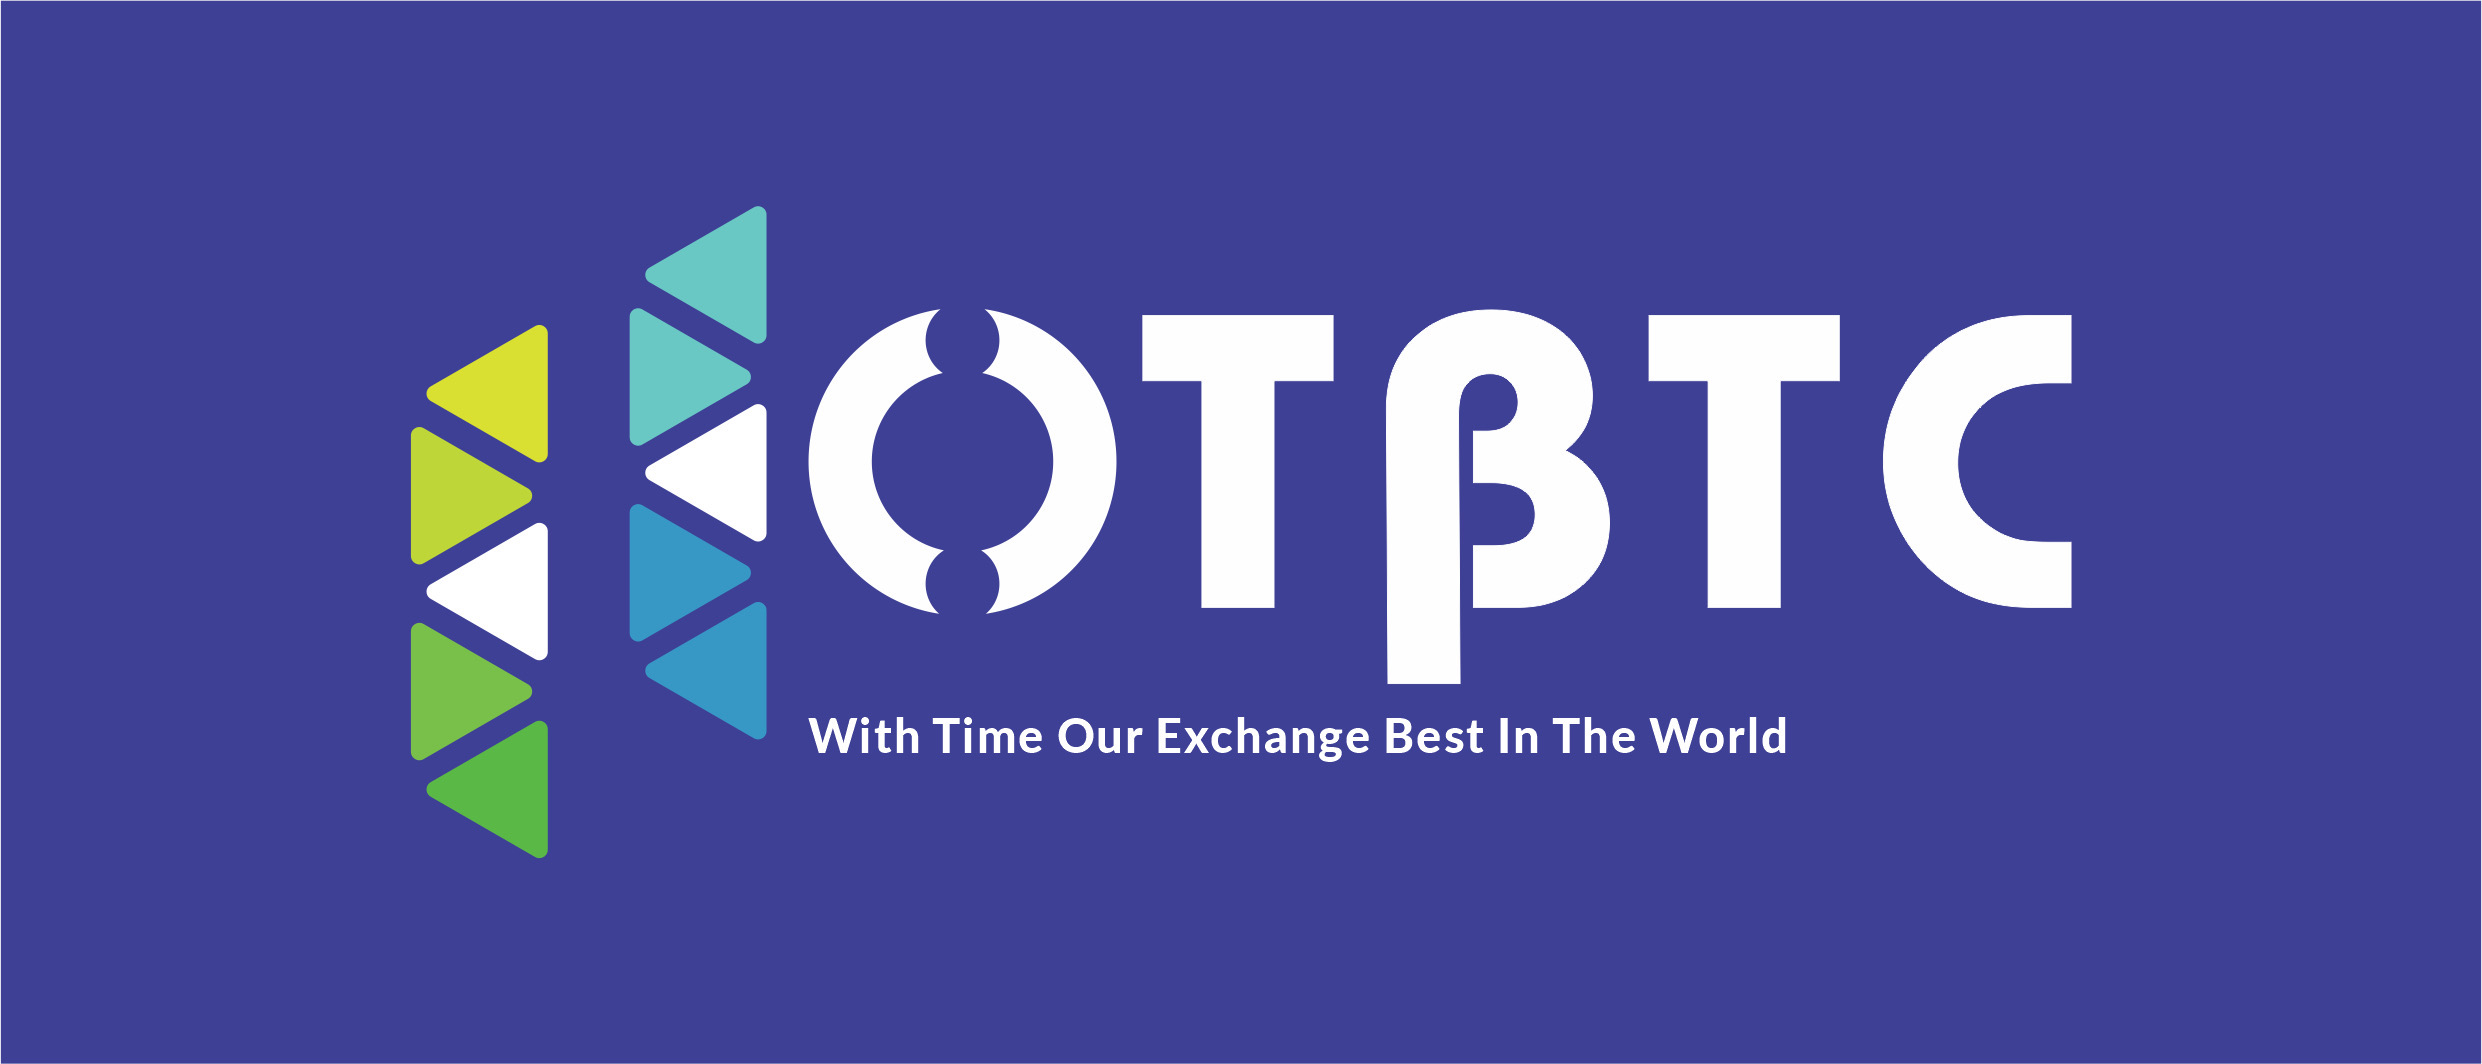 HotBTC, New Crypto Exchange with ICO Focus, Launched with Free 100 ICO Listings and Zero Trading Fees